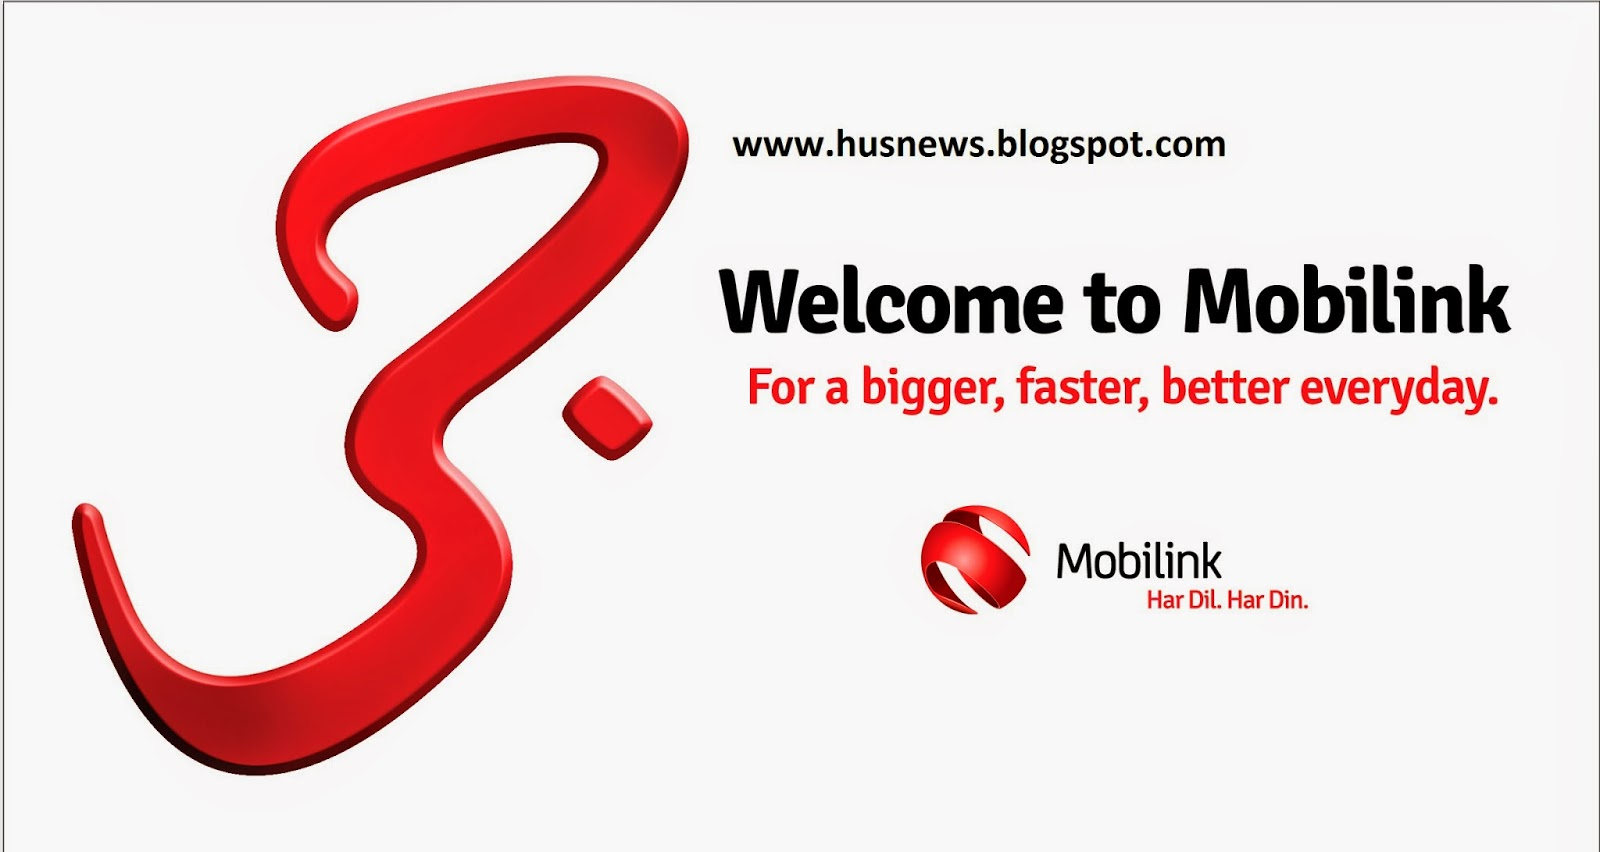 mobilink gsm pakistan report on marketing